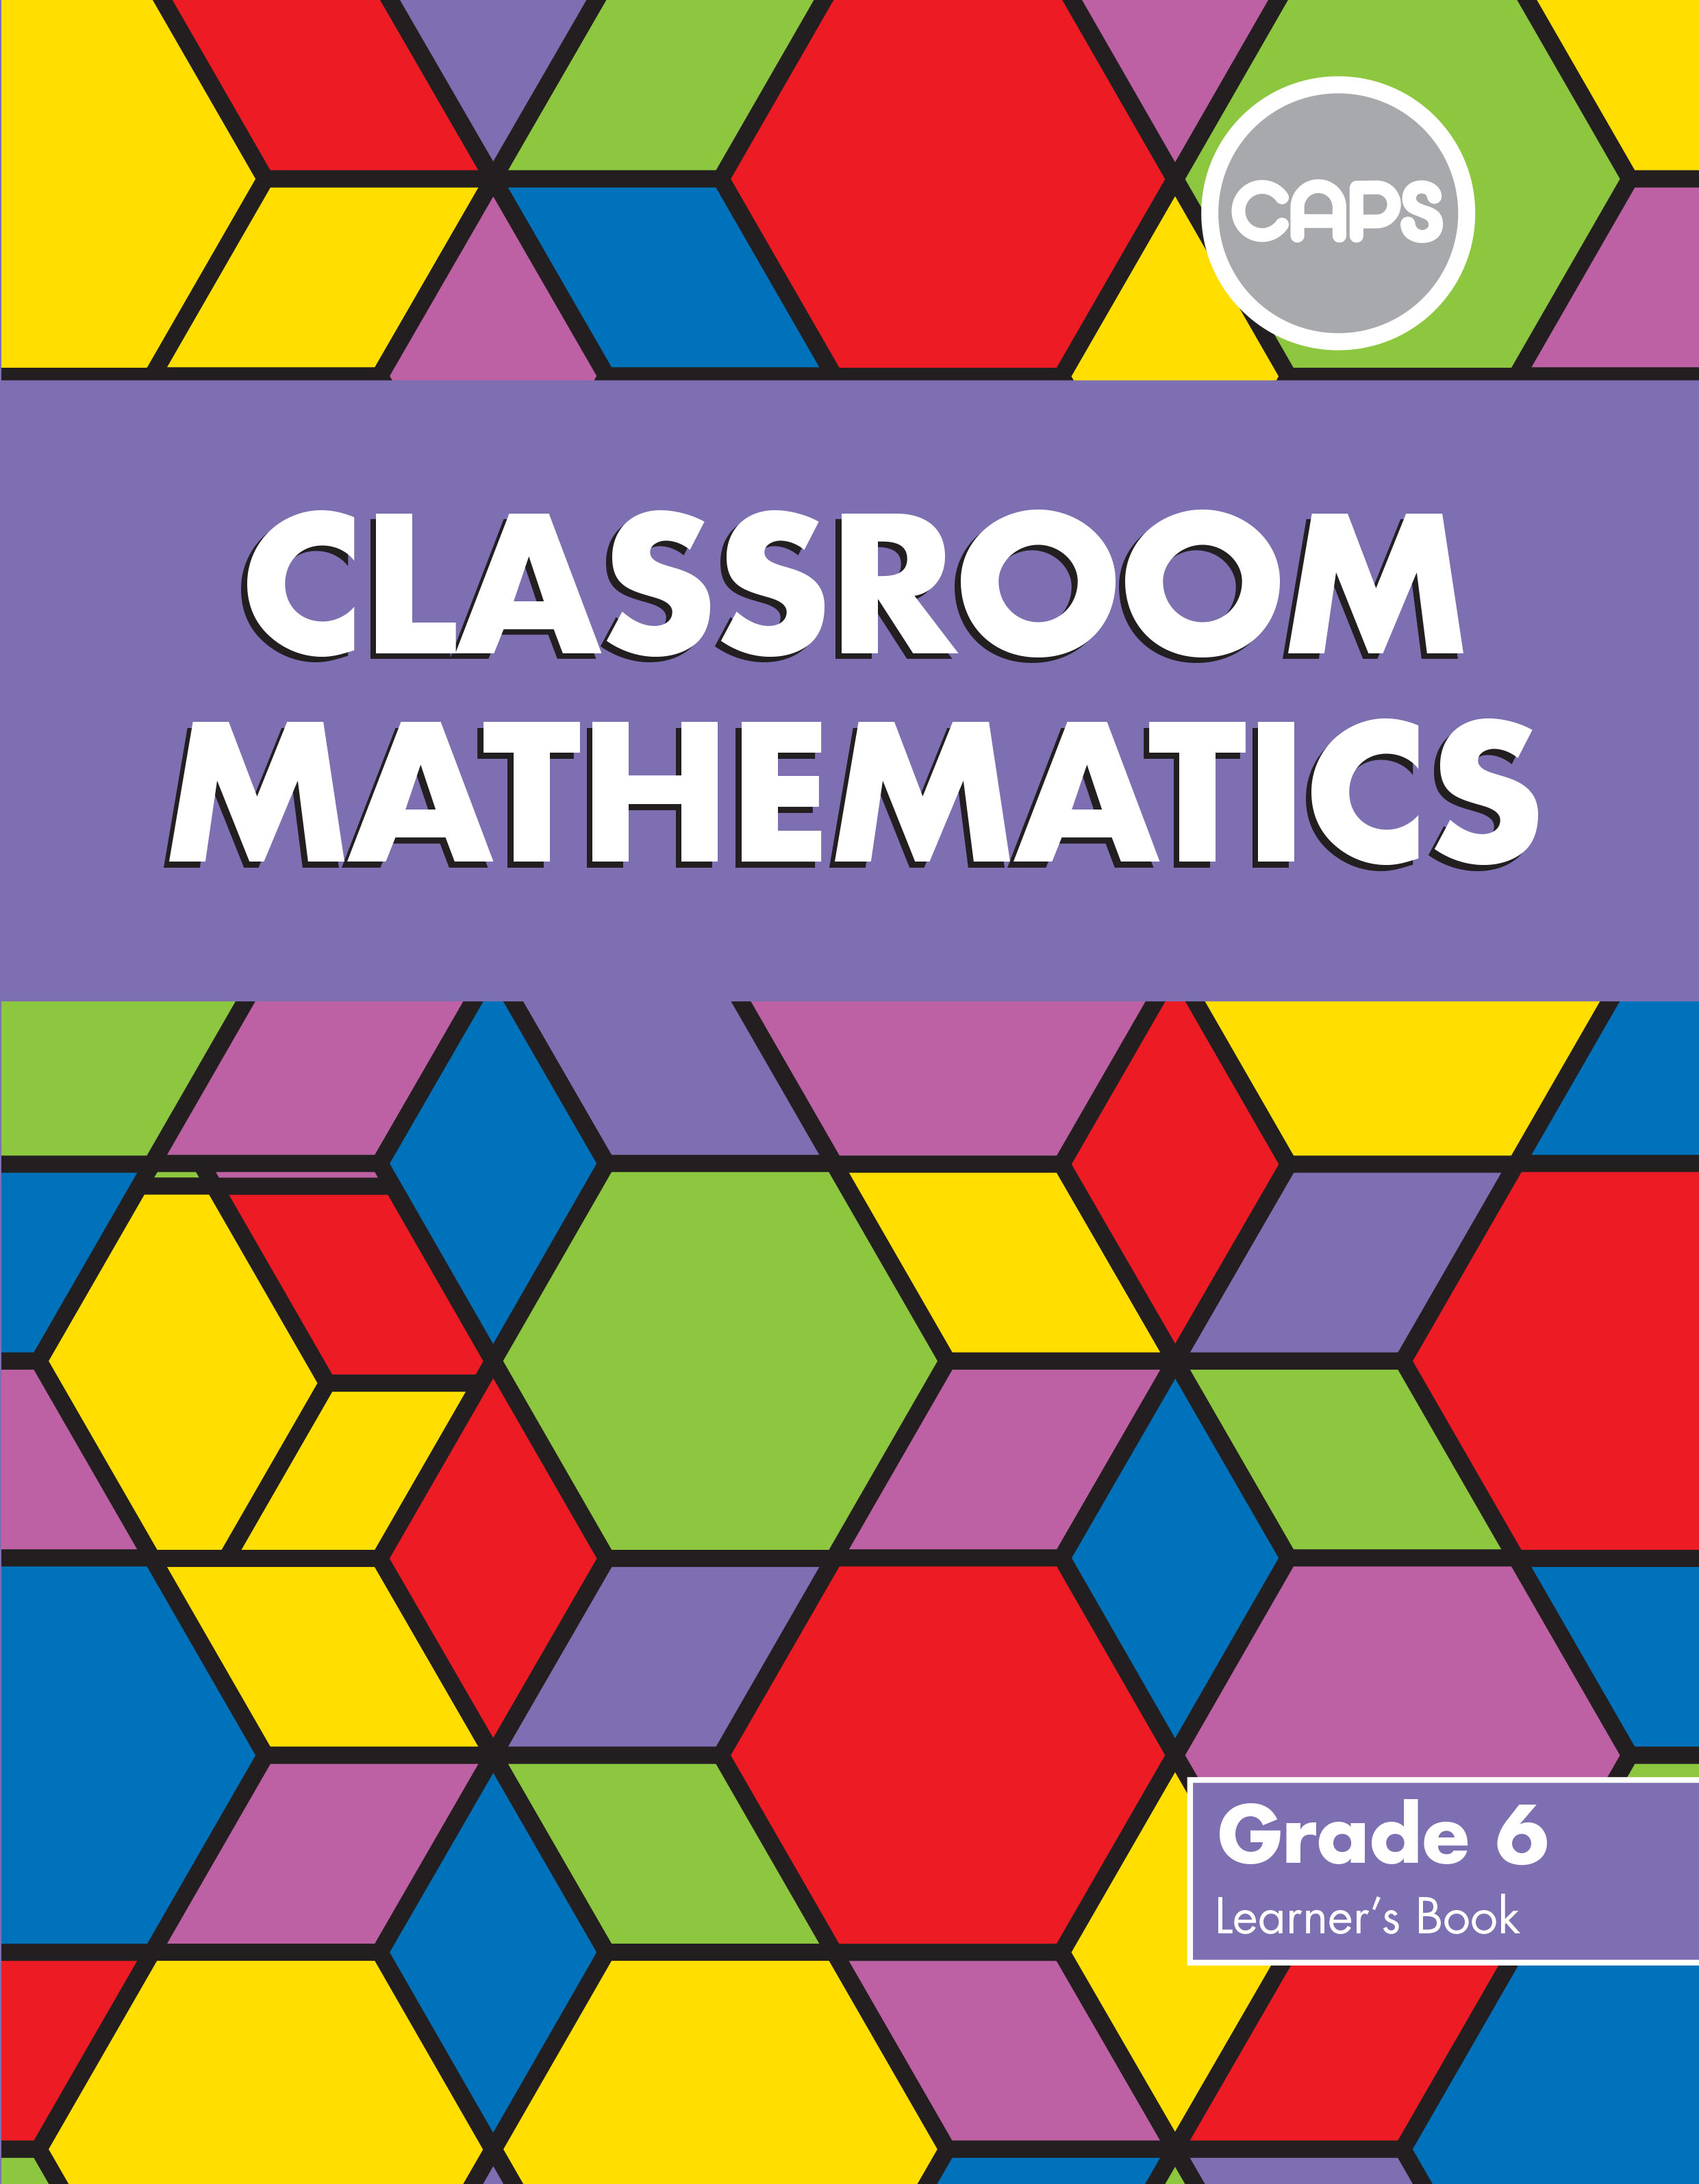 Picture of Classroom mathematics CAPS